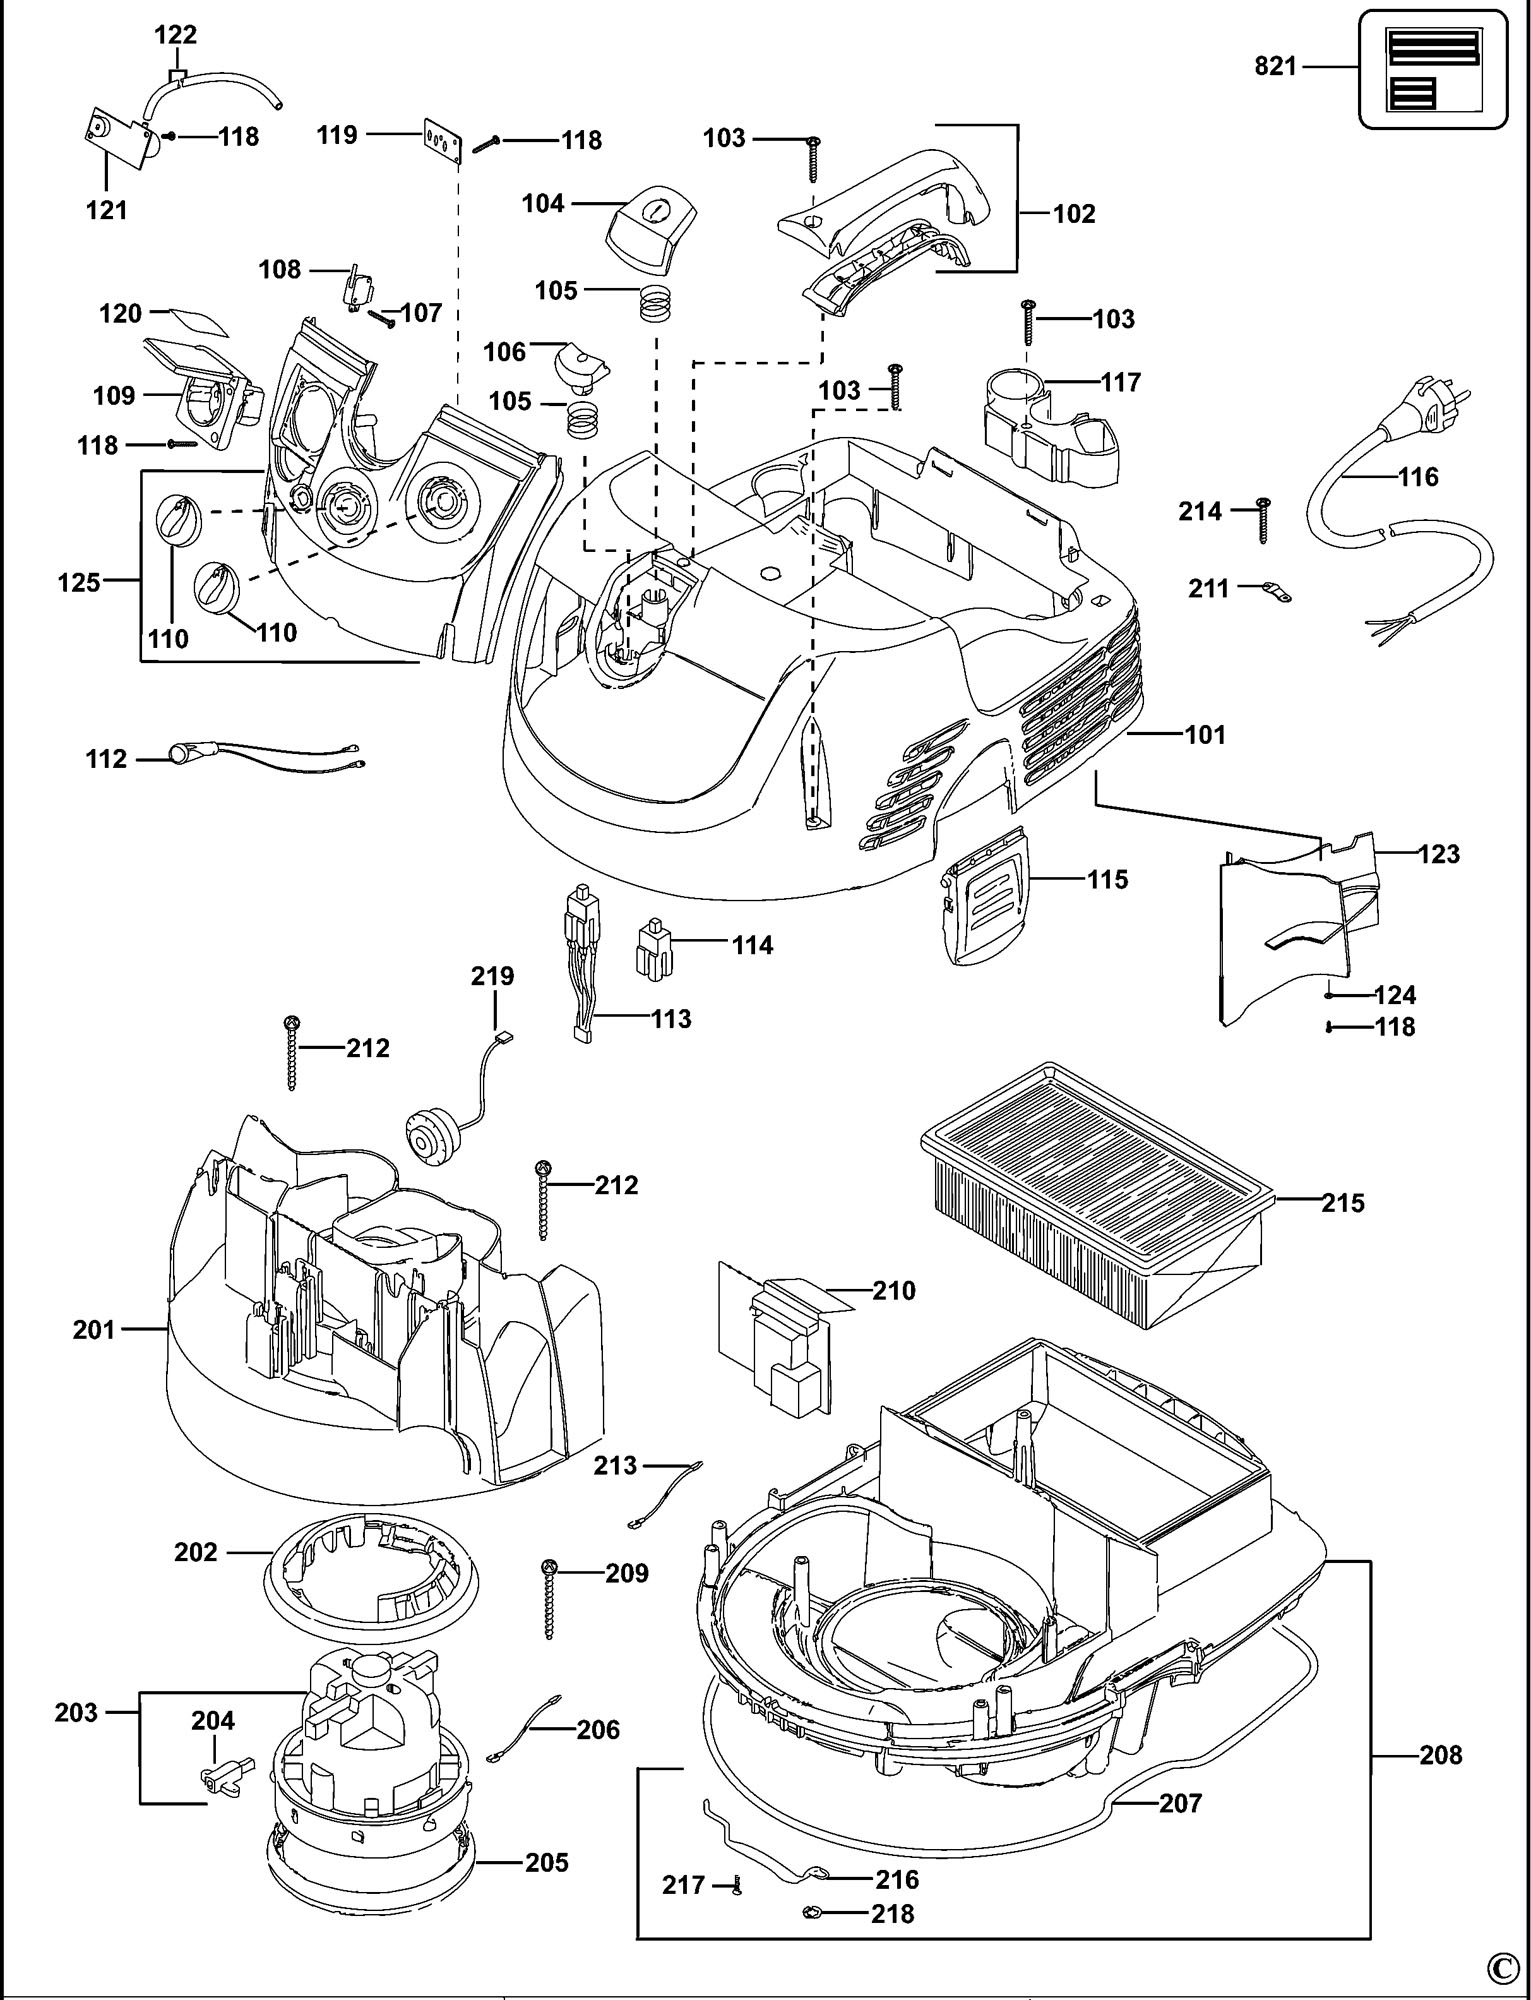 baldor single phase 230v motor wiring diagram co2 boiling point of and connection database 1 reversing schematics plug